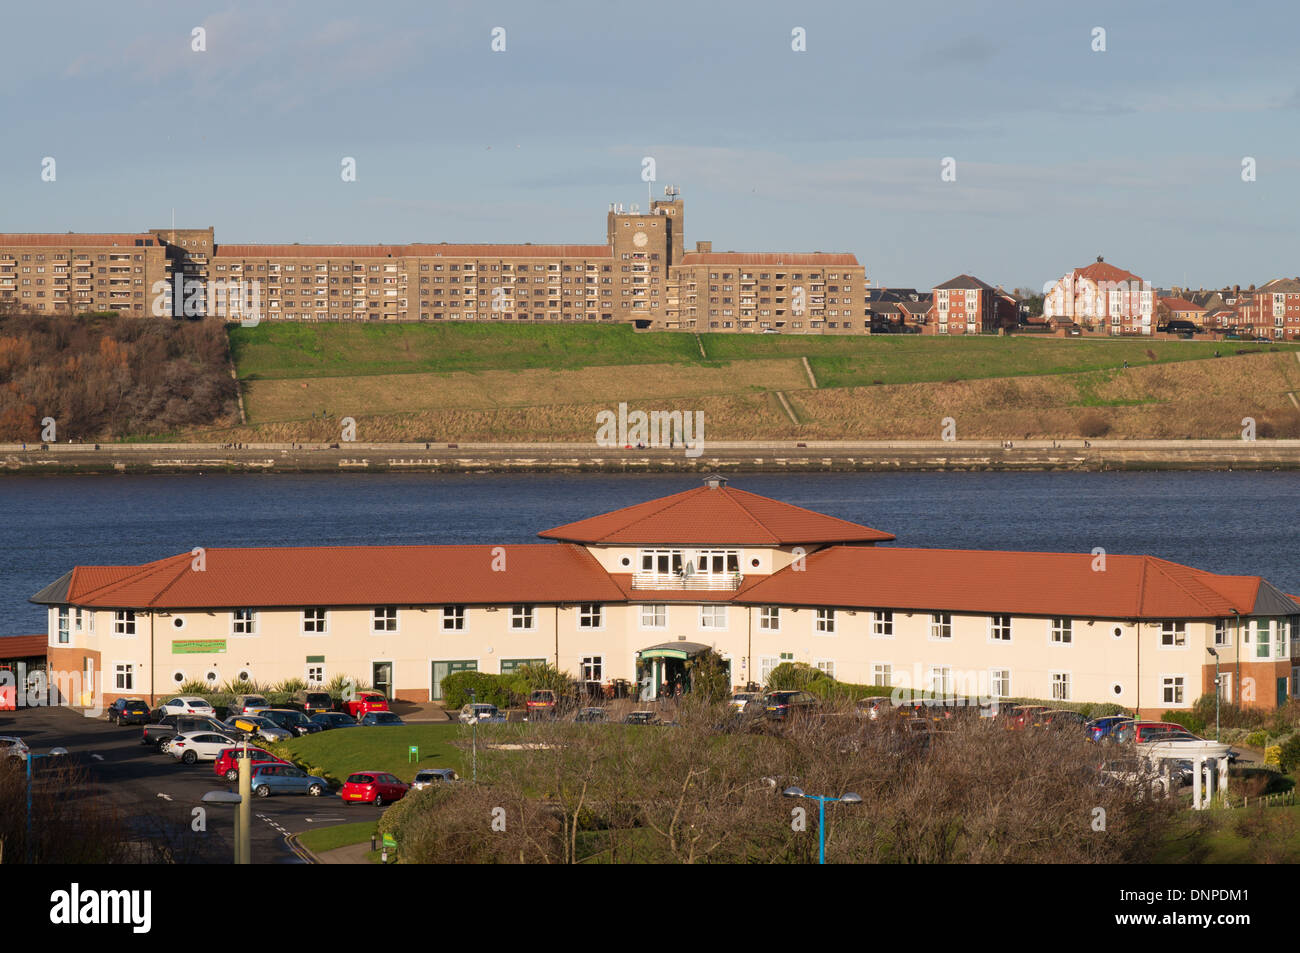 Little Haven Hotel South Shields with Sir James Knott Memorial Flats north Shields in the background, north east England UK - Stock Image